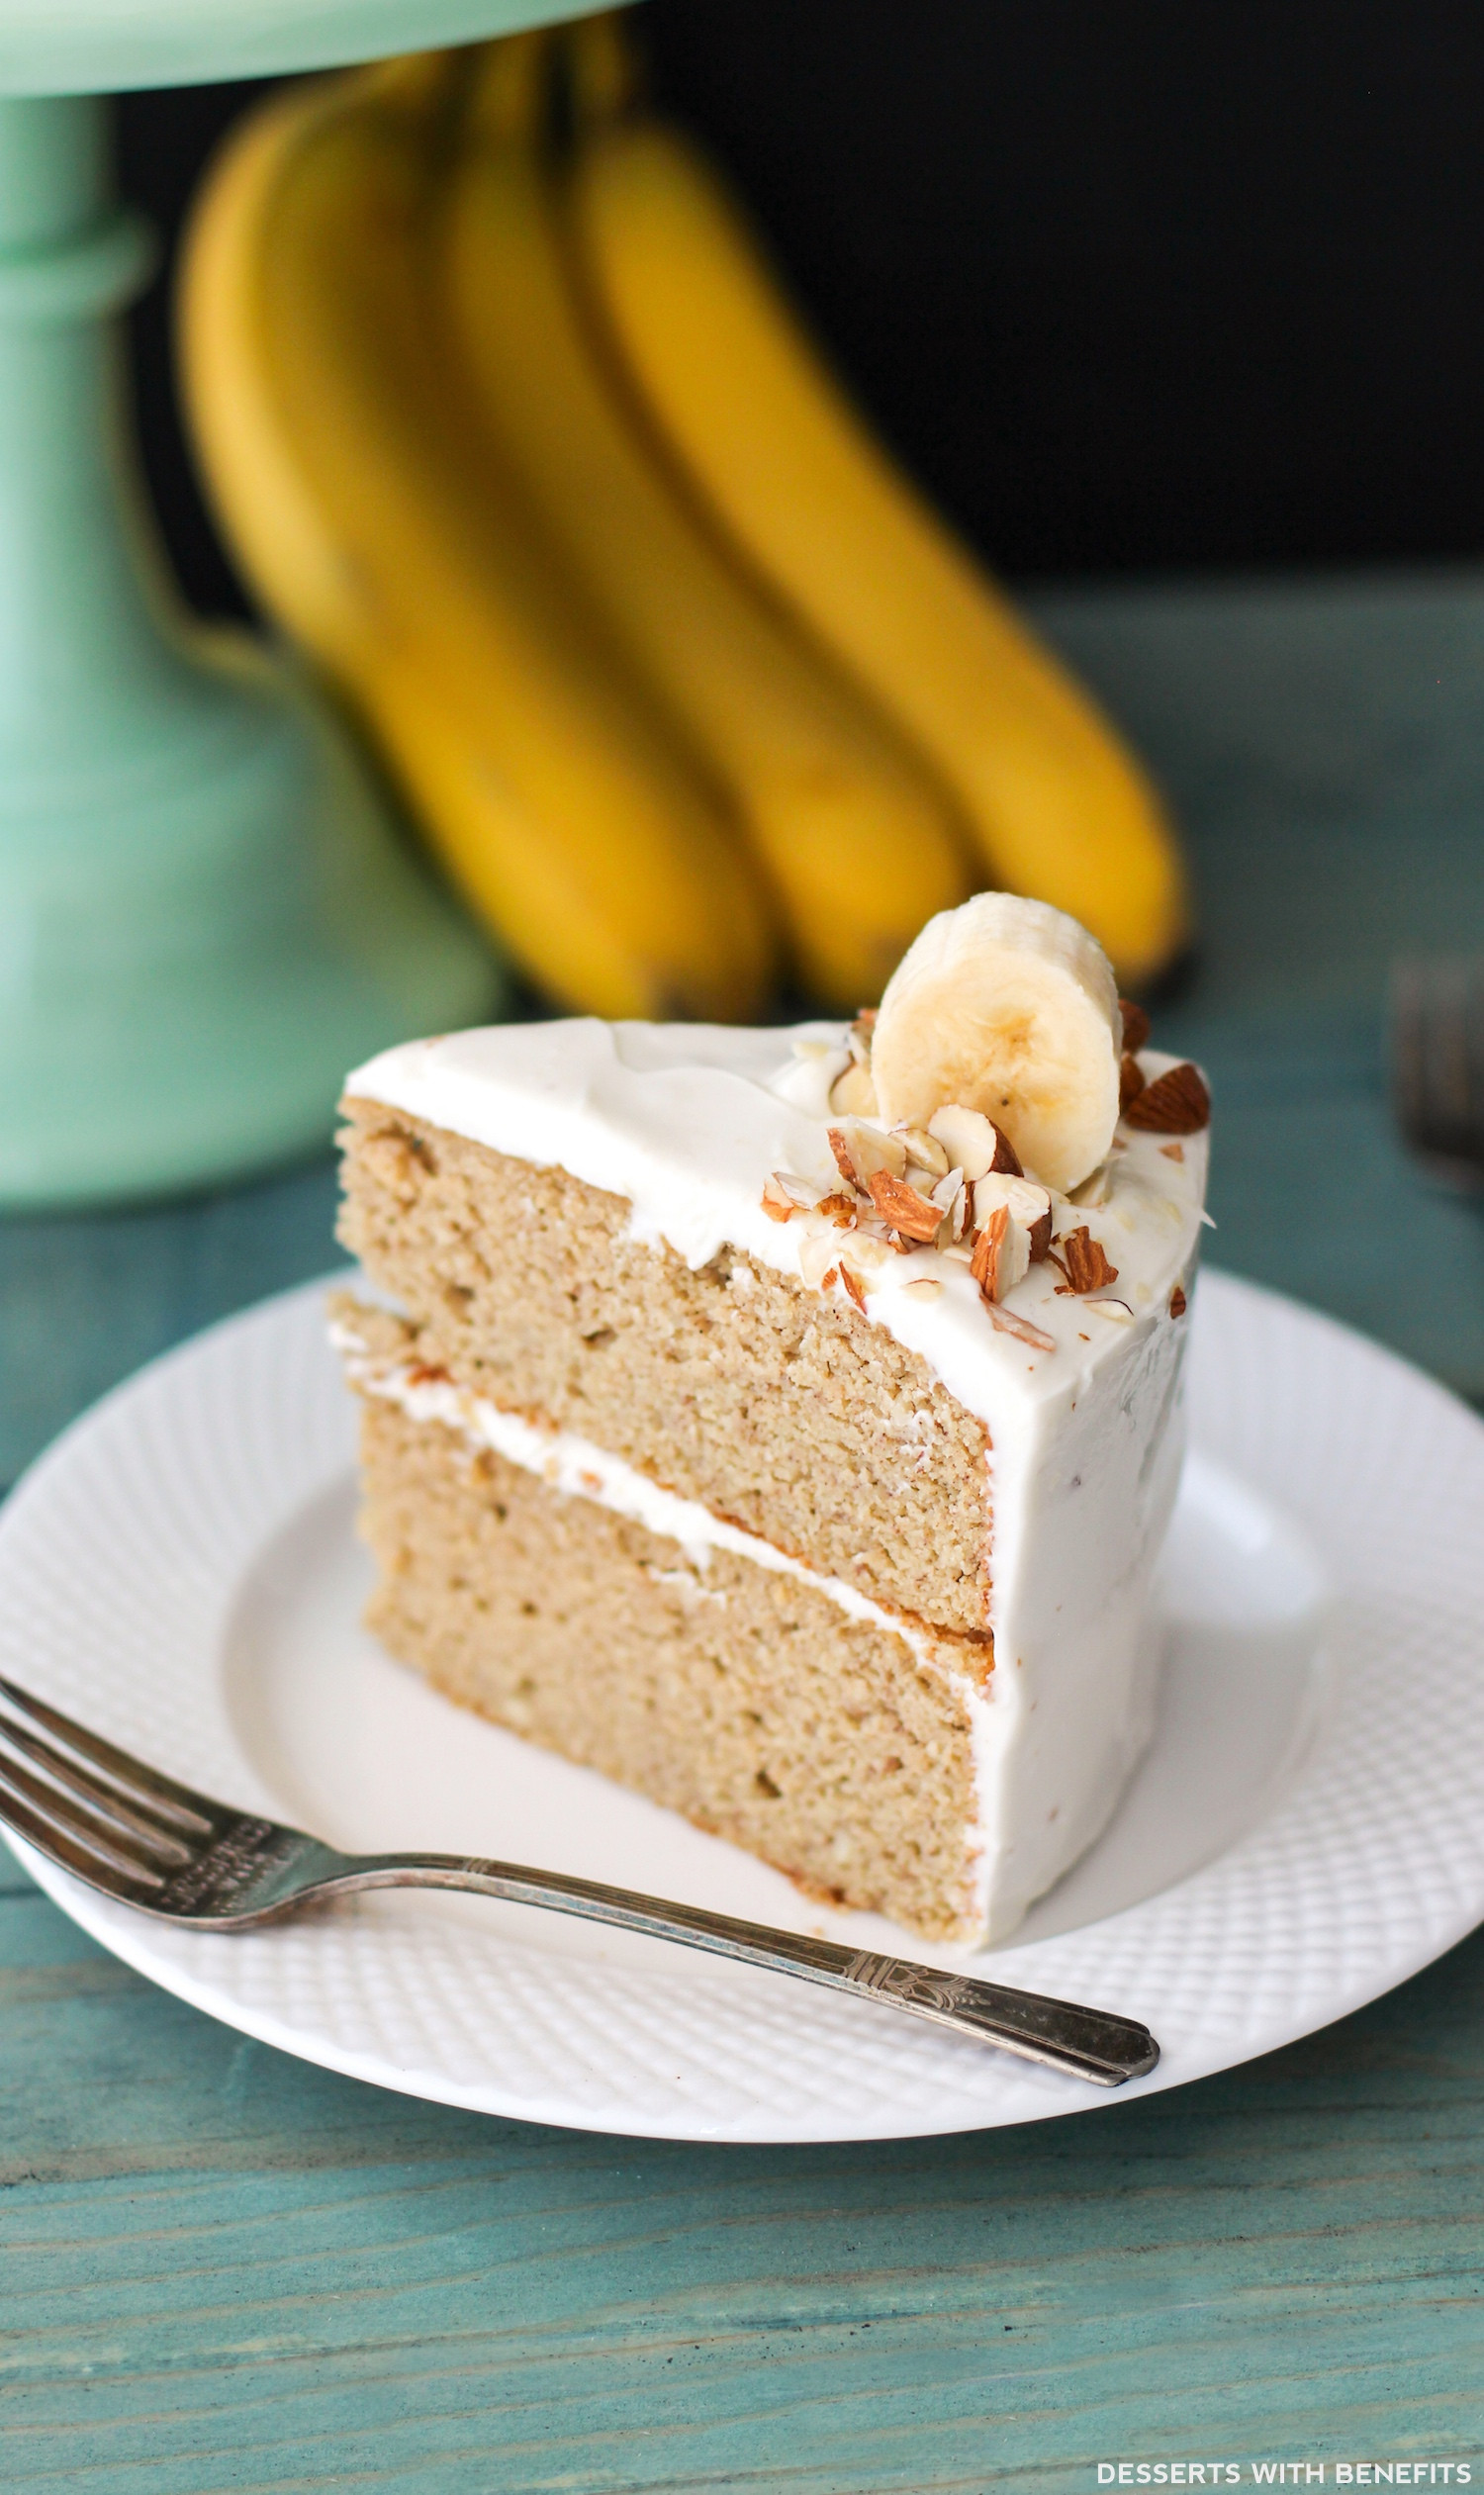 Healthy Cake Recipes  Gluten Free Healthy Banana Cake with Cream Cheese Frosting